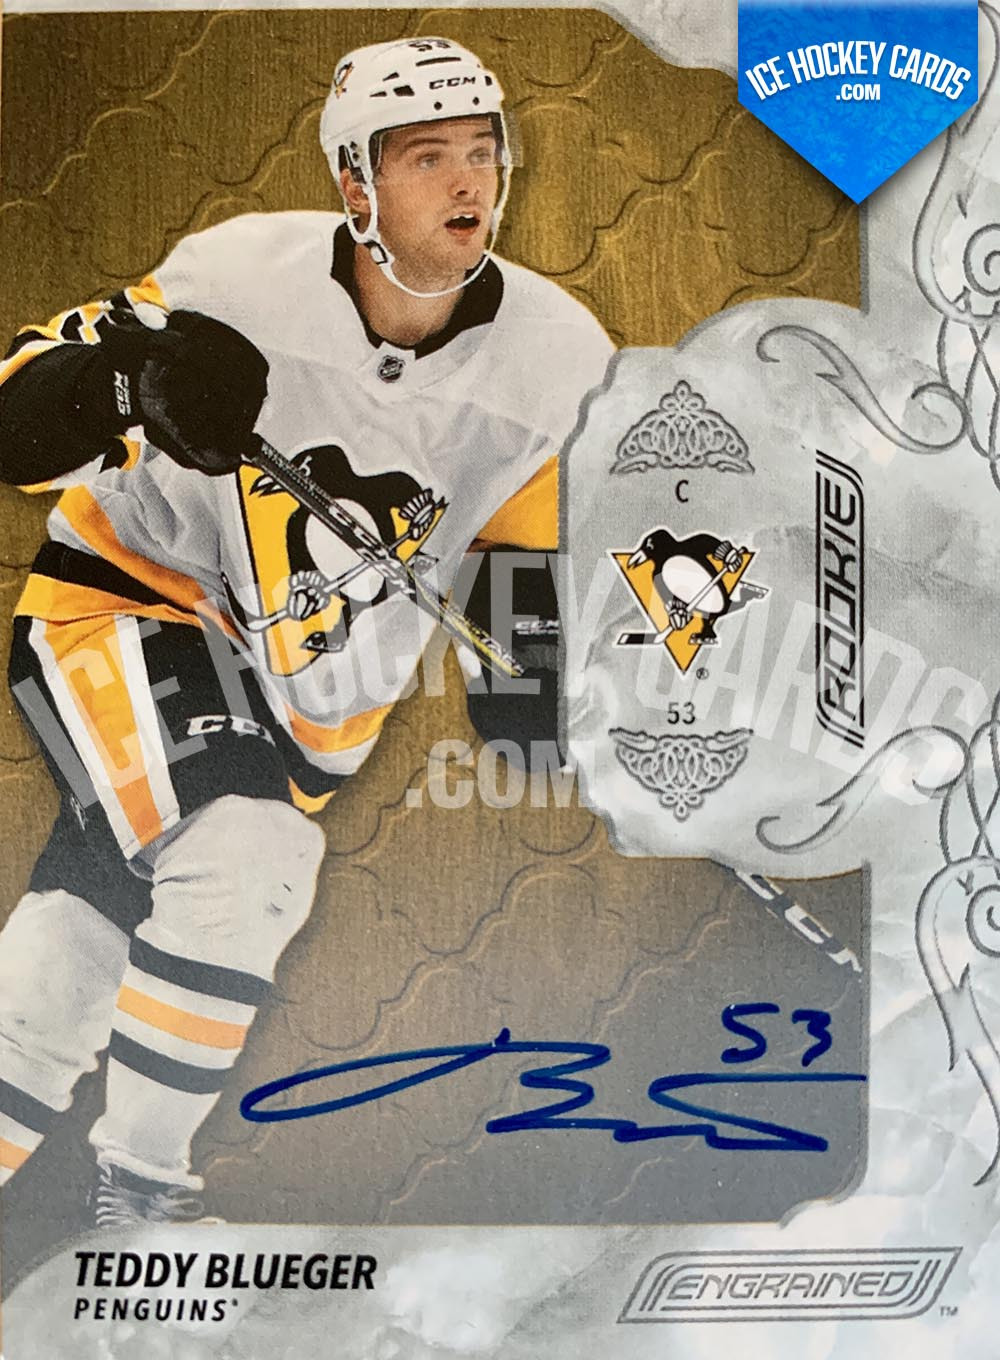 Upper Deck - Engrained 2019-20 - Teddy Blueger Autographed Rookie Card